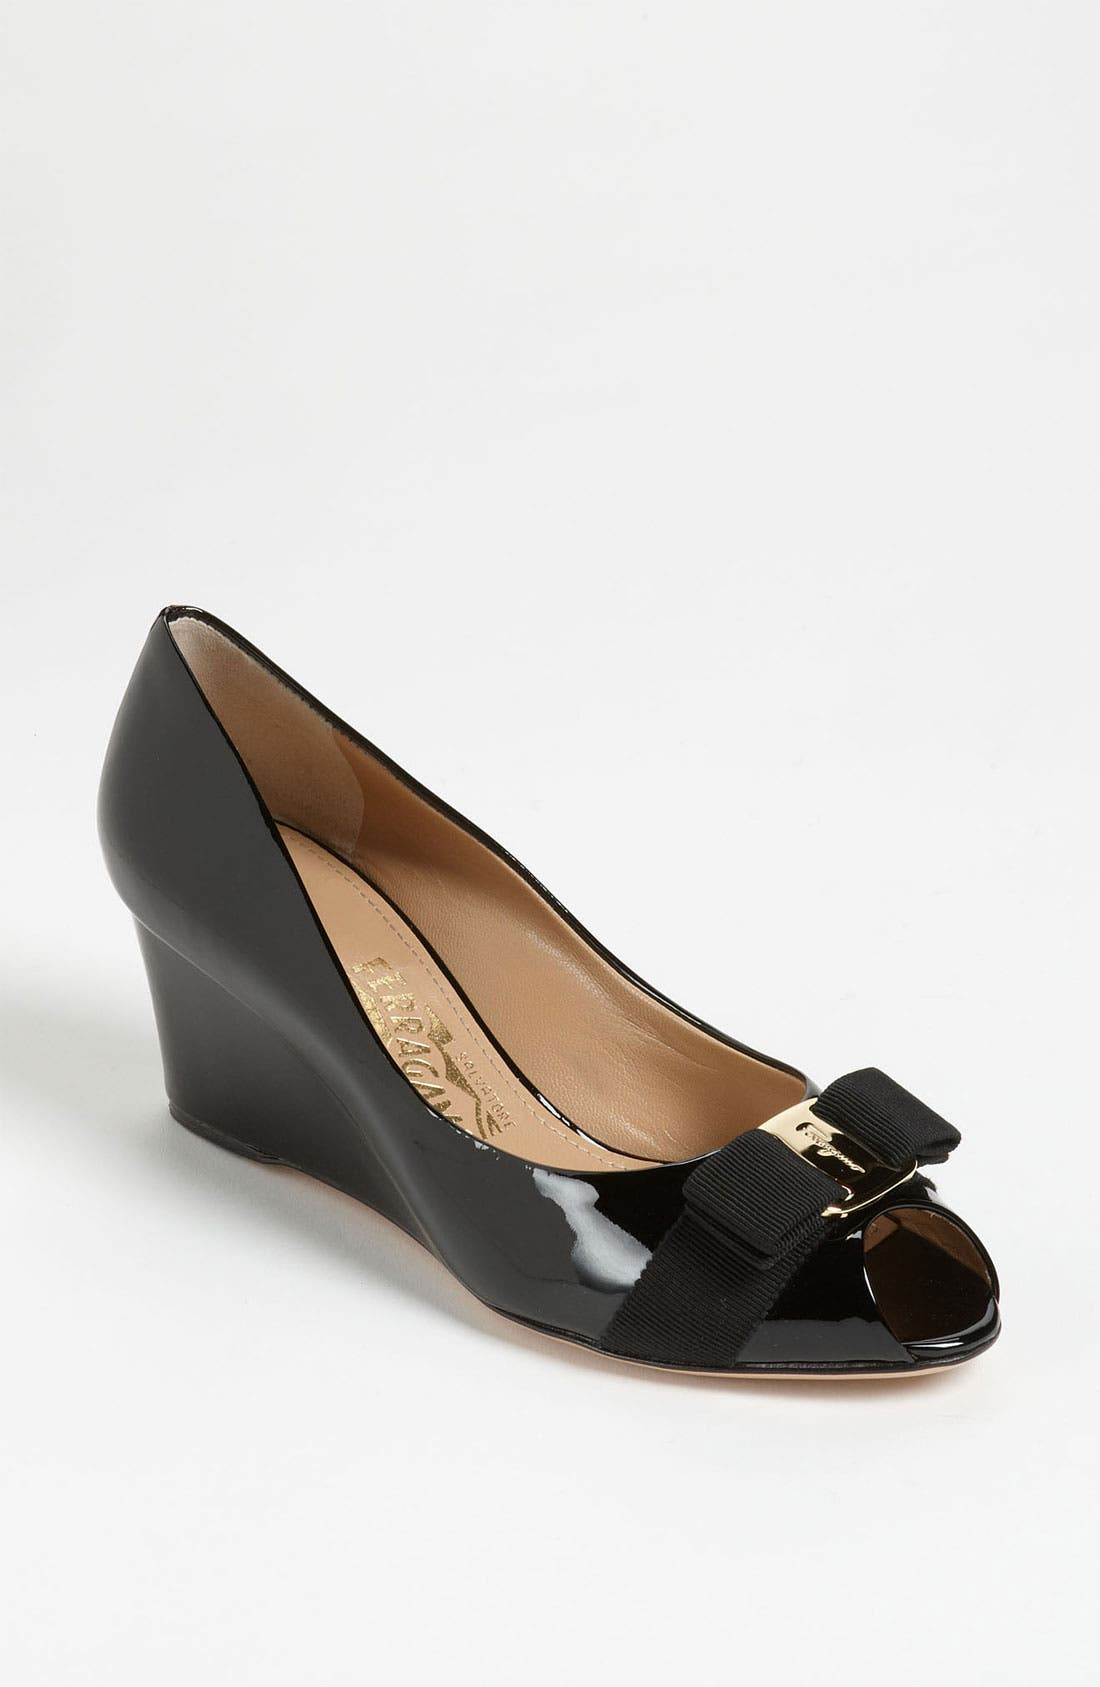 Alternate Image 1 Selected - Salvatore Ferragamo 'Sissi' Pump